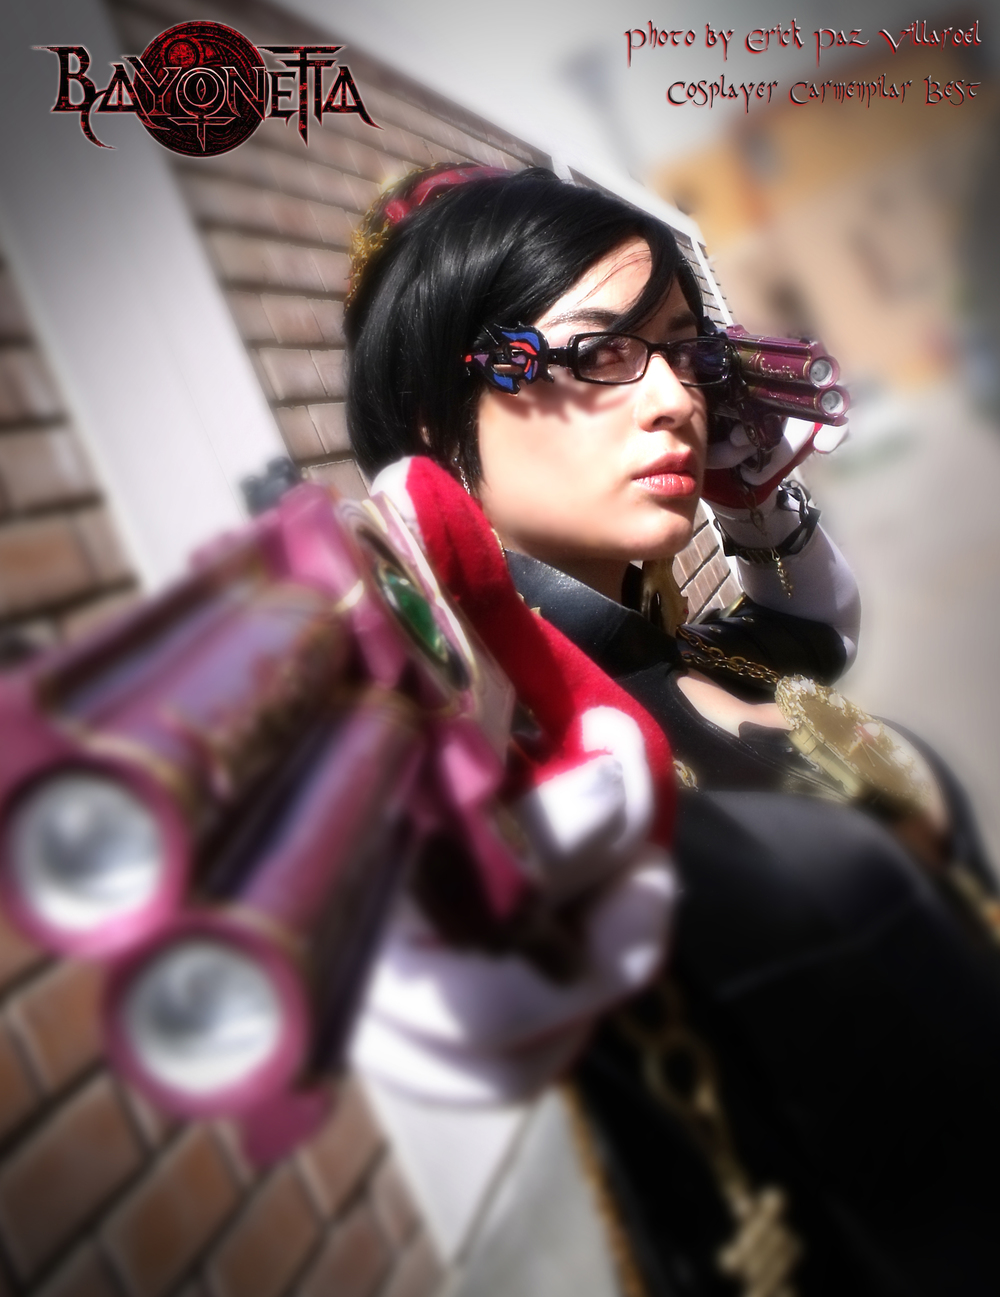 Dark Tifa Strife is Bayonetta | Photo by: Erick Paz Villaroel